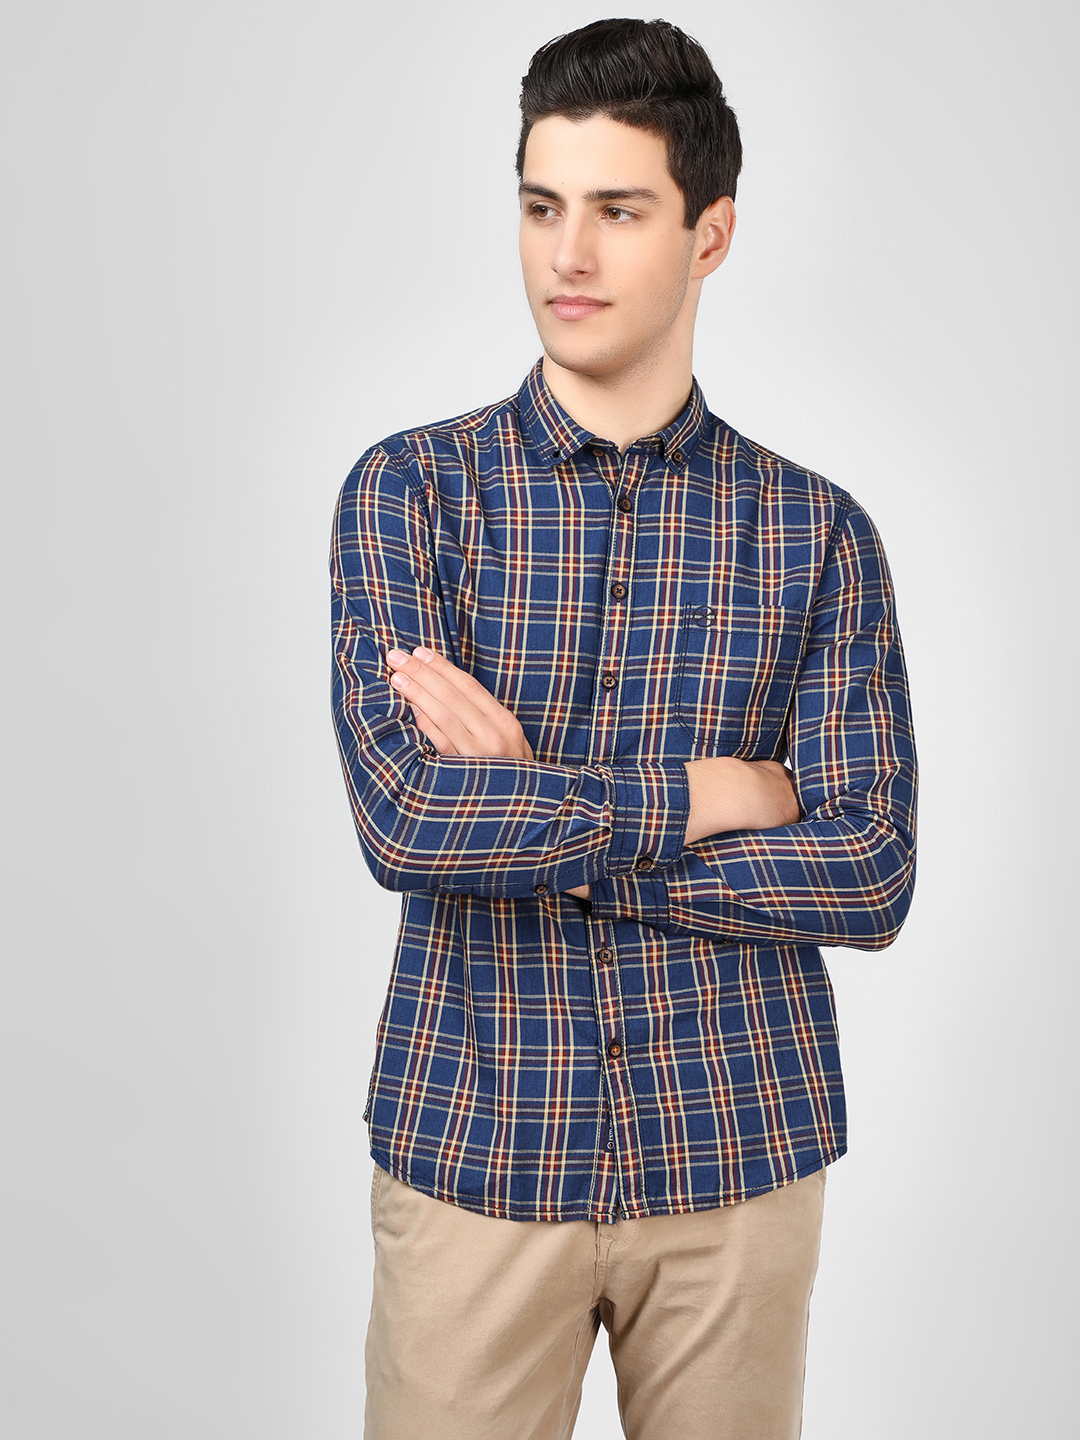 SCULLERS Navy Check Long Sleeve Shirt 1